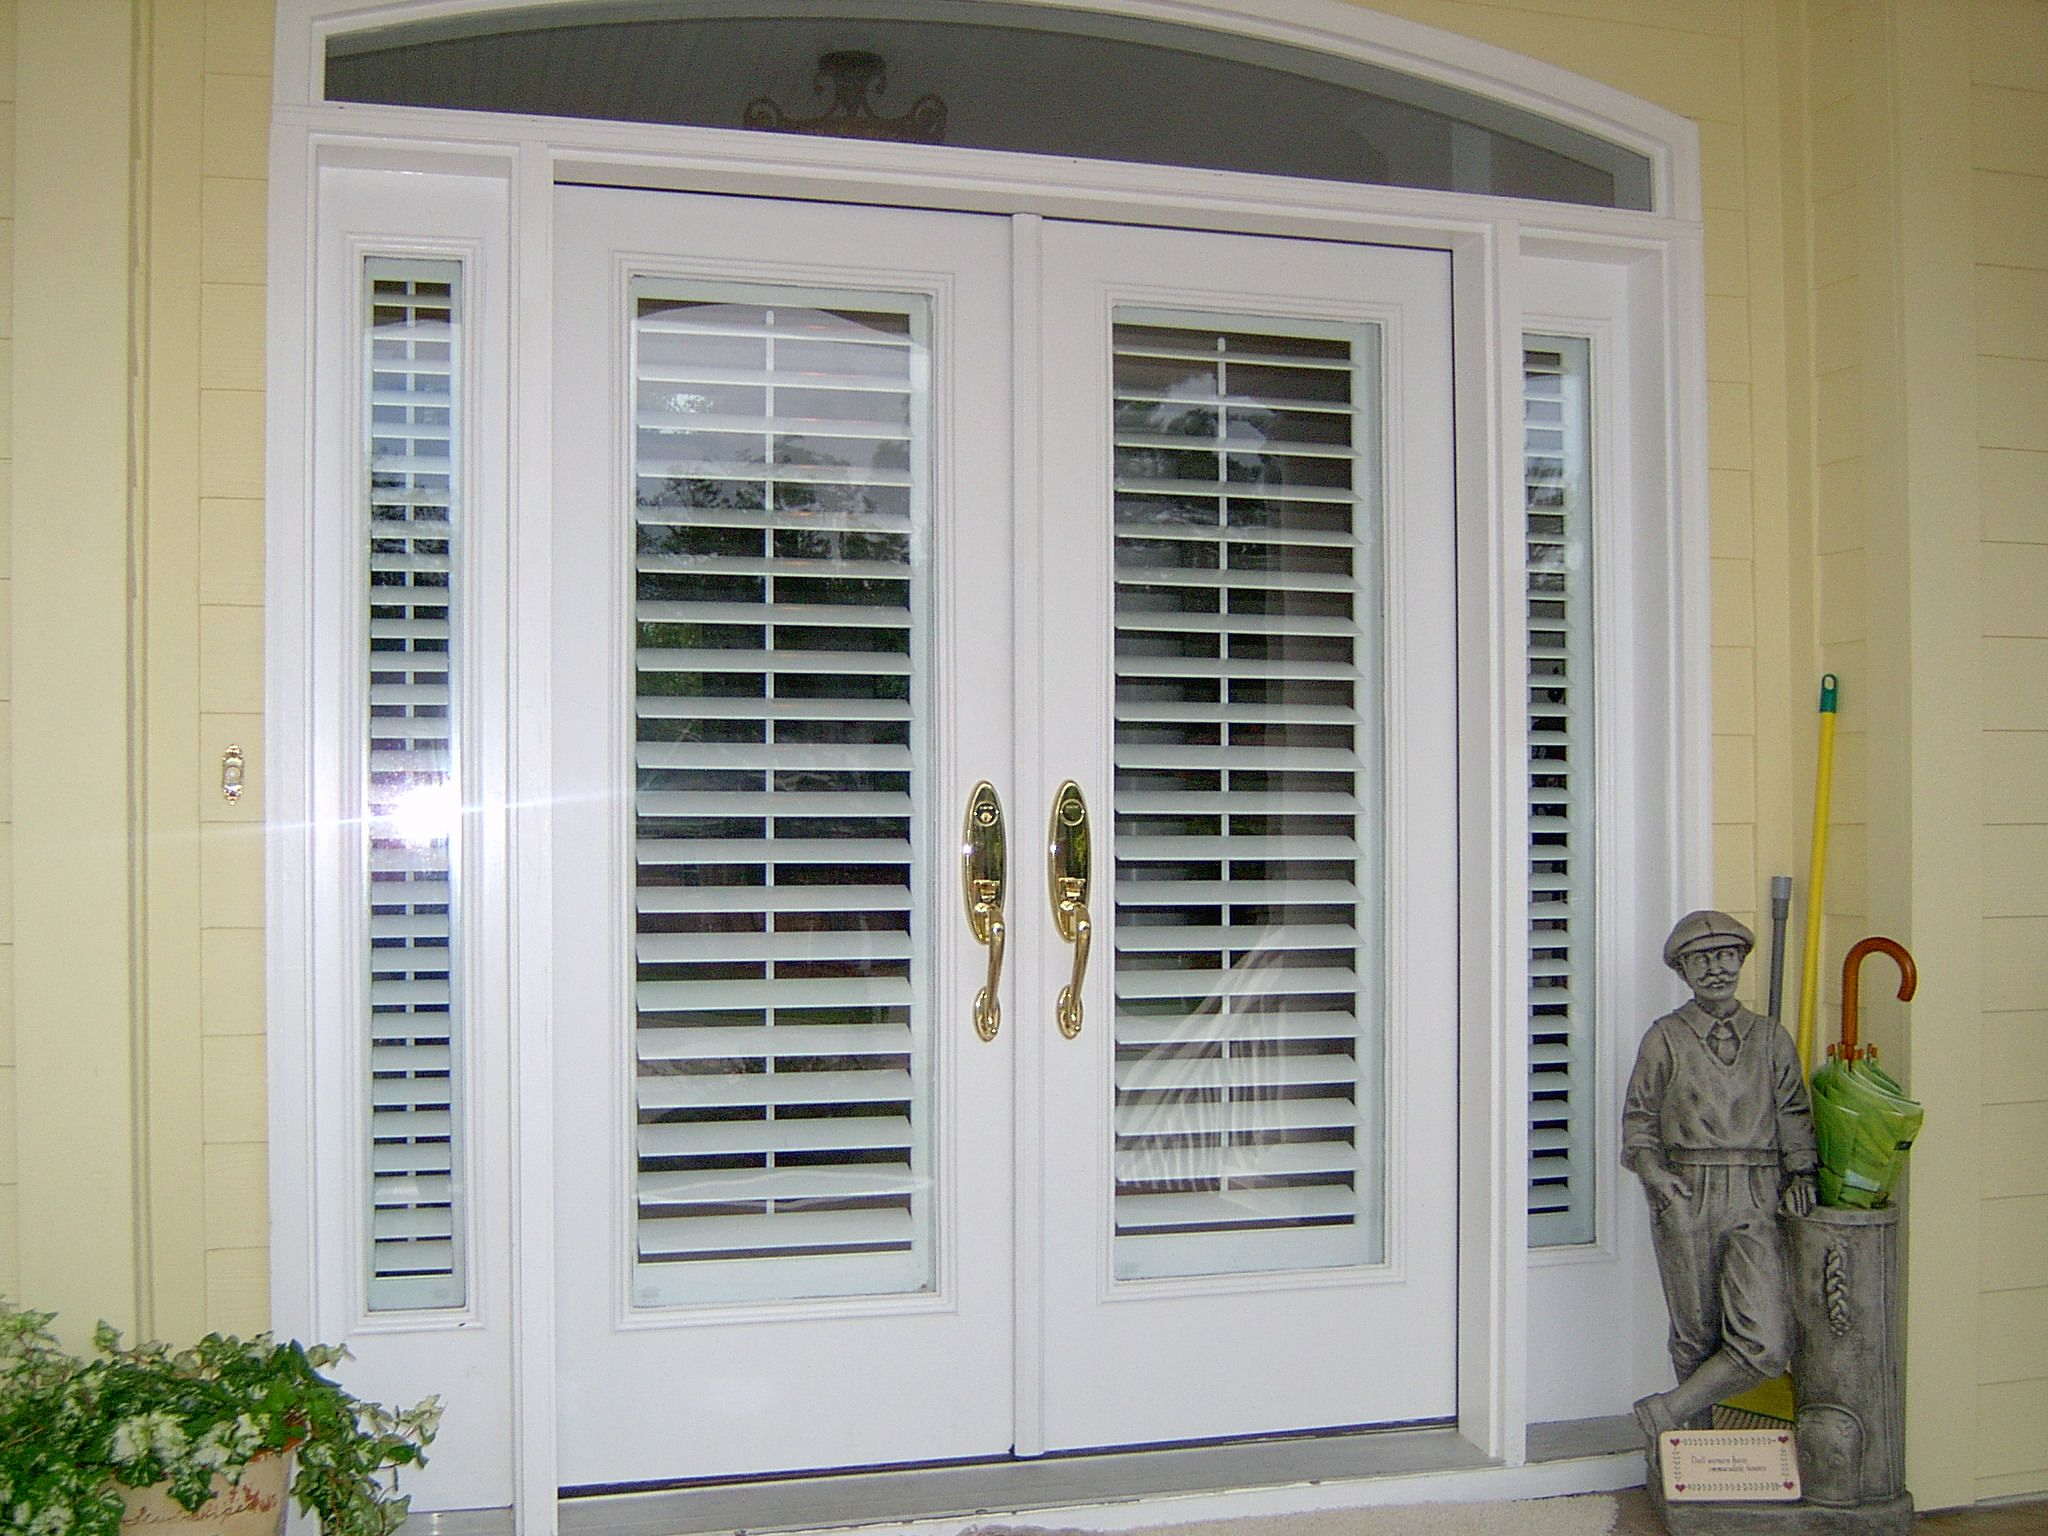 Glass front door window treatments - Plantation Shutters On A Front Door Exterior View Door Window Treatmentswindow